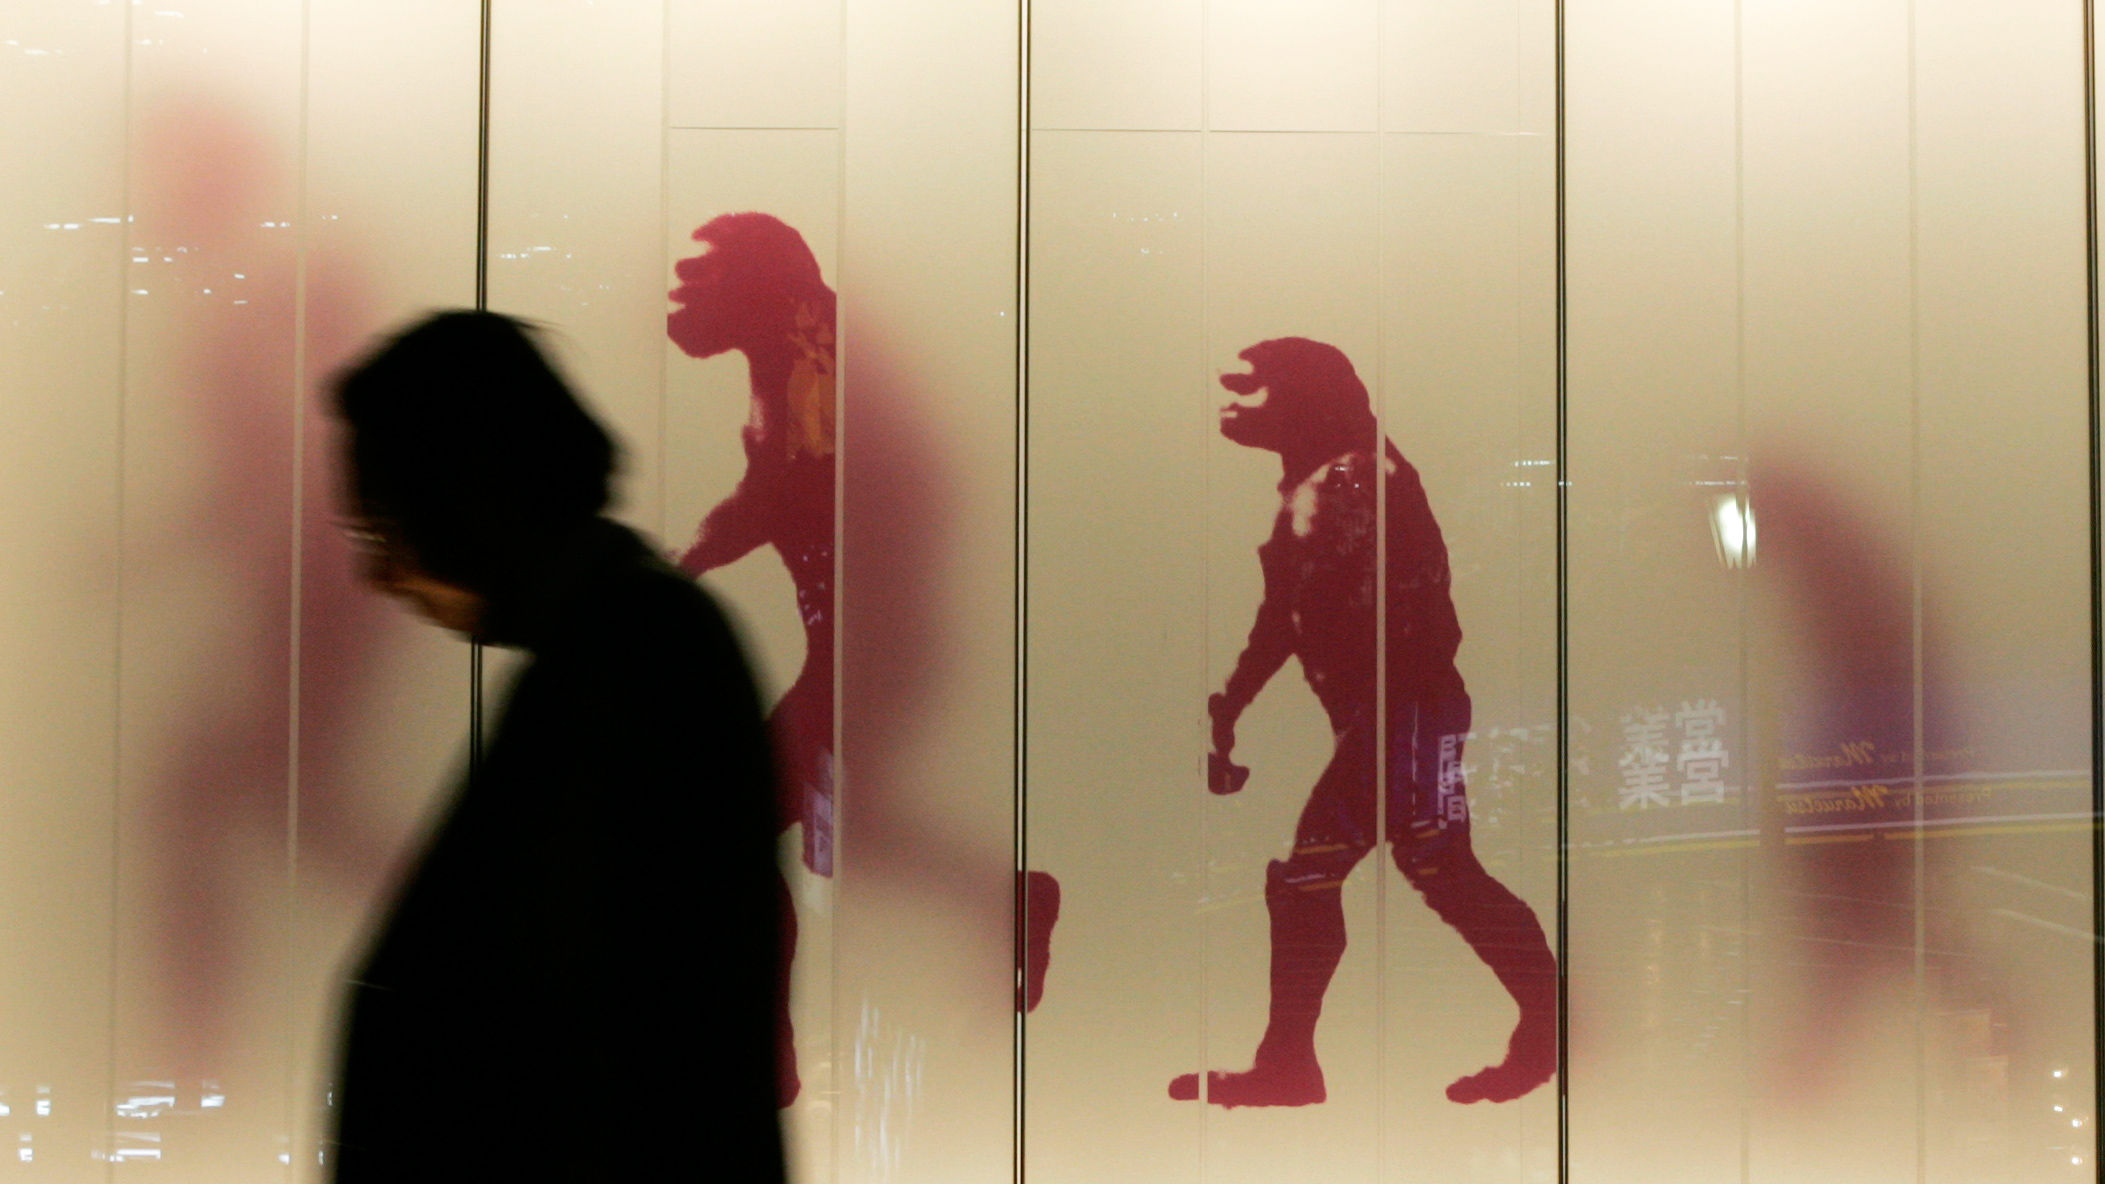 A man walks past a sign showing the evolution of man in a business district in downtown Tokyo November 17, 2008.